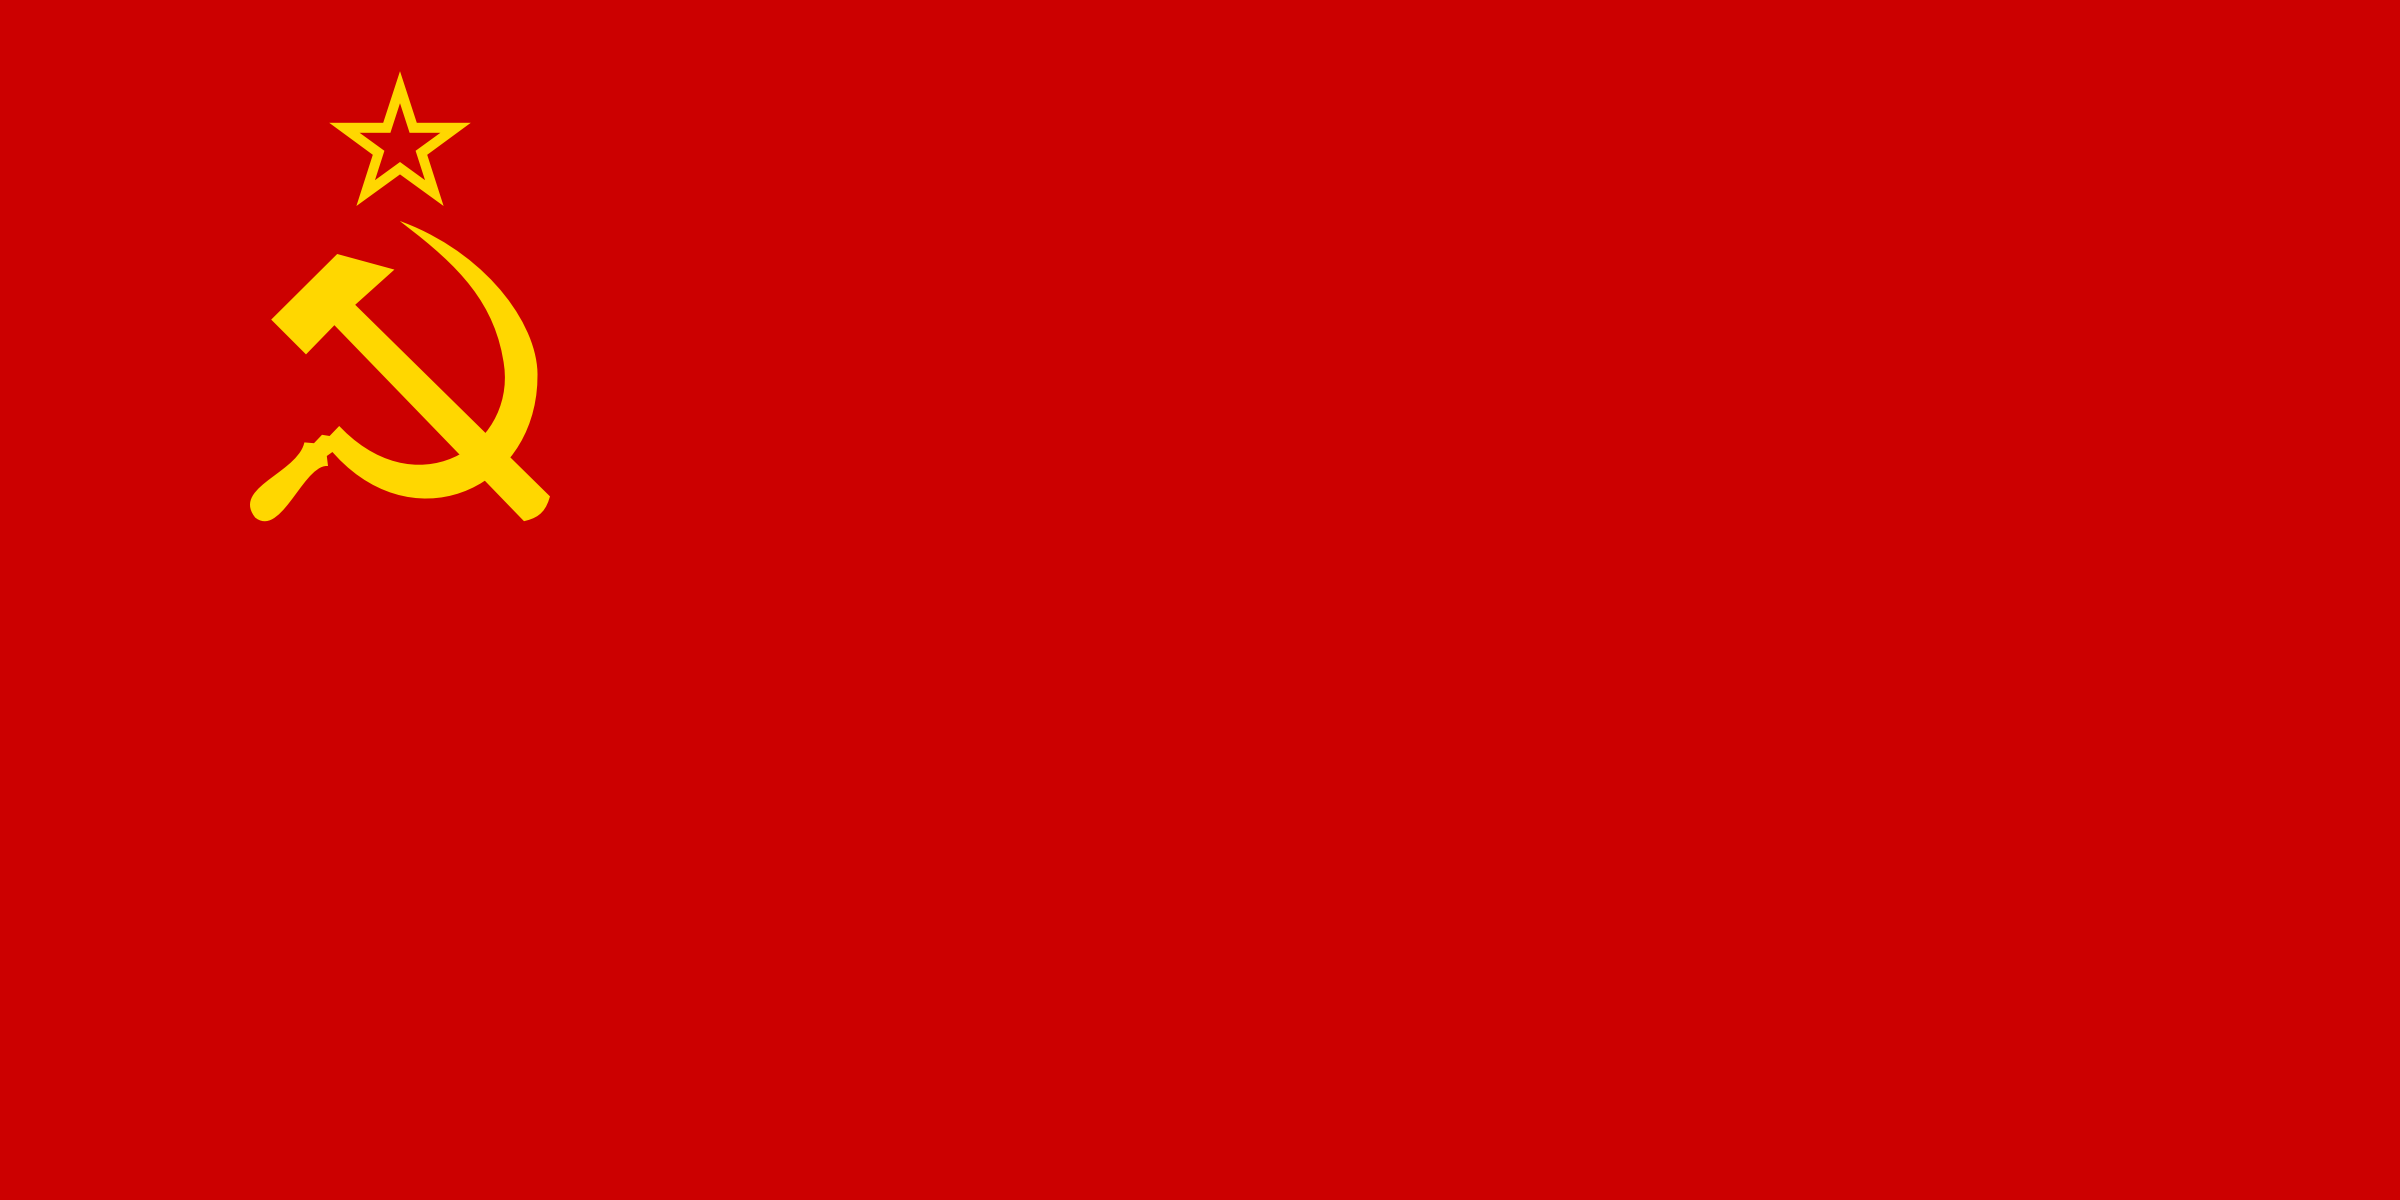 Flag of the Soviet Union by Marxist-Leninist